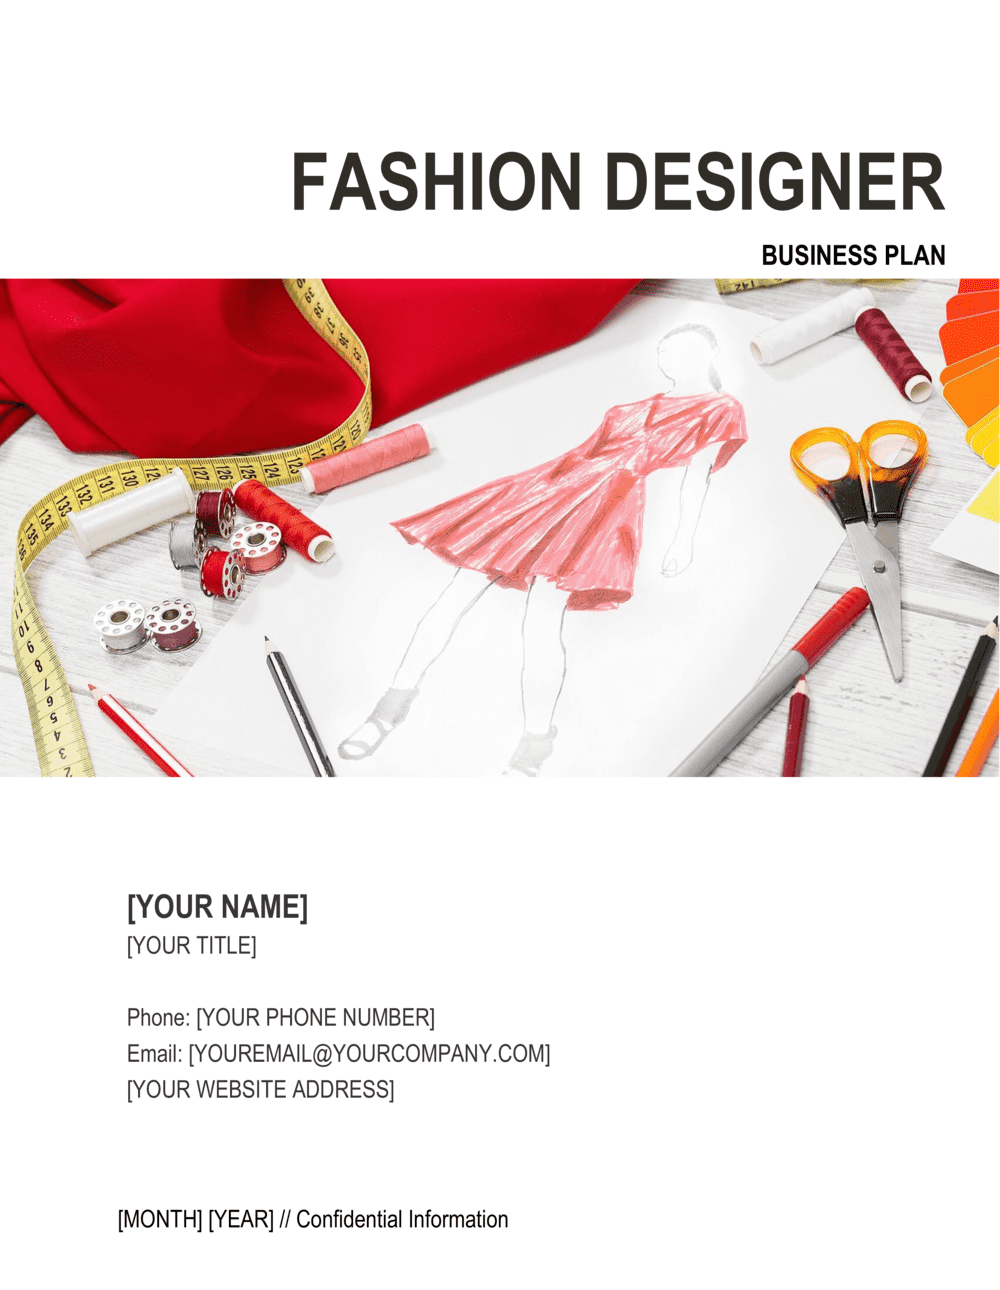 Fashion Designer Business Plan Template By Business In A Box